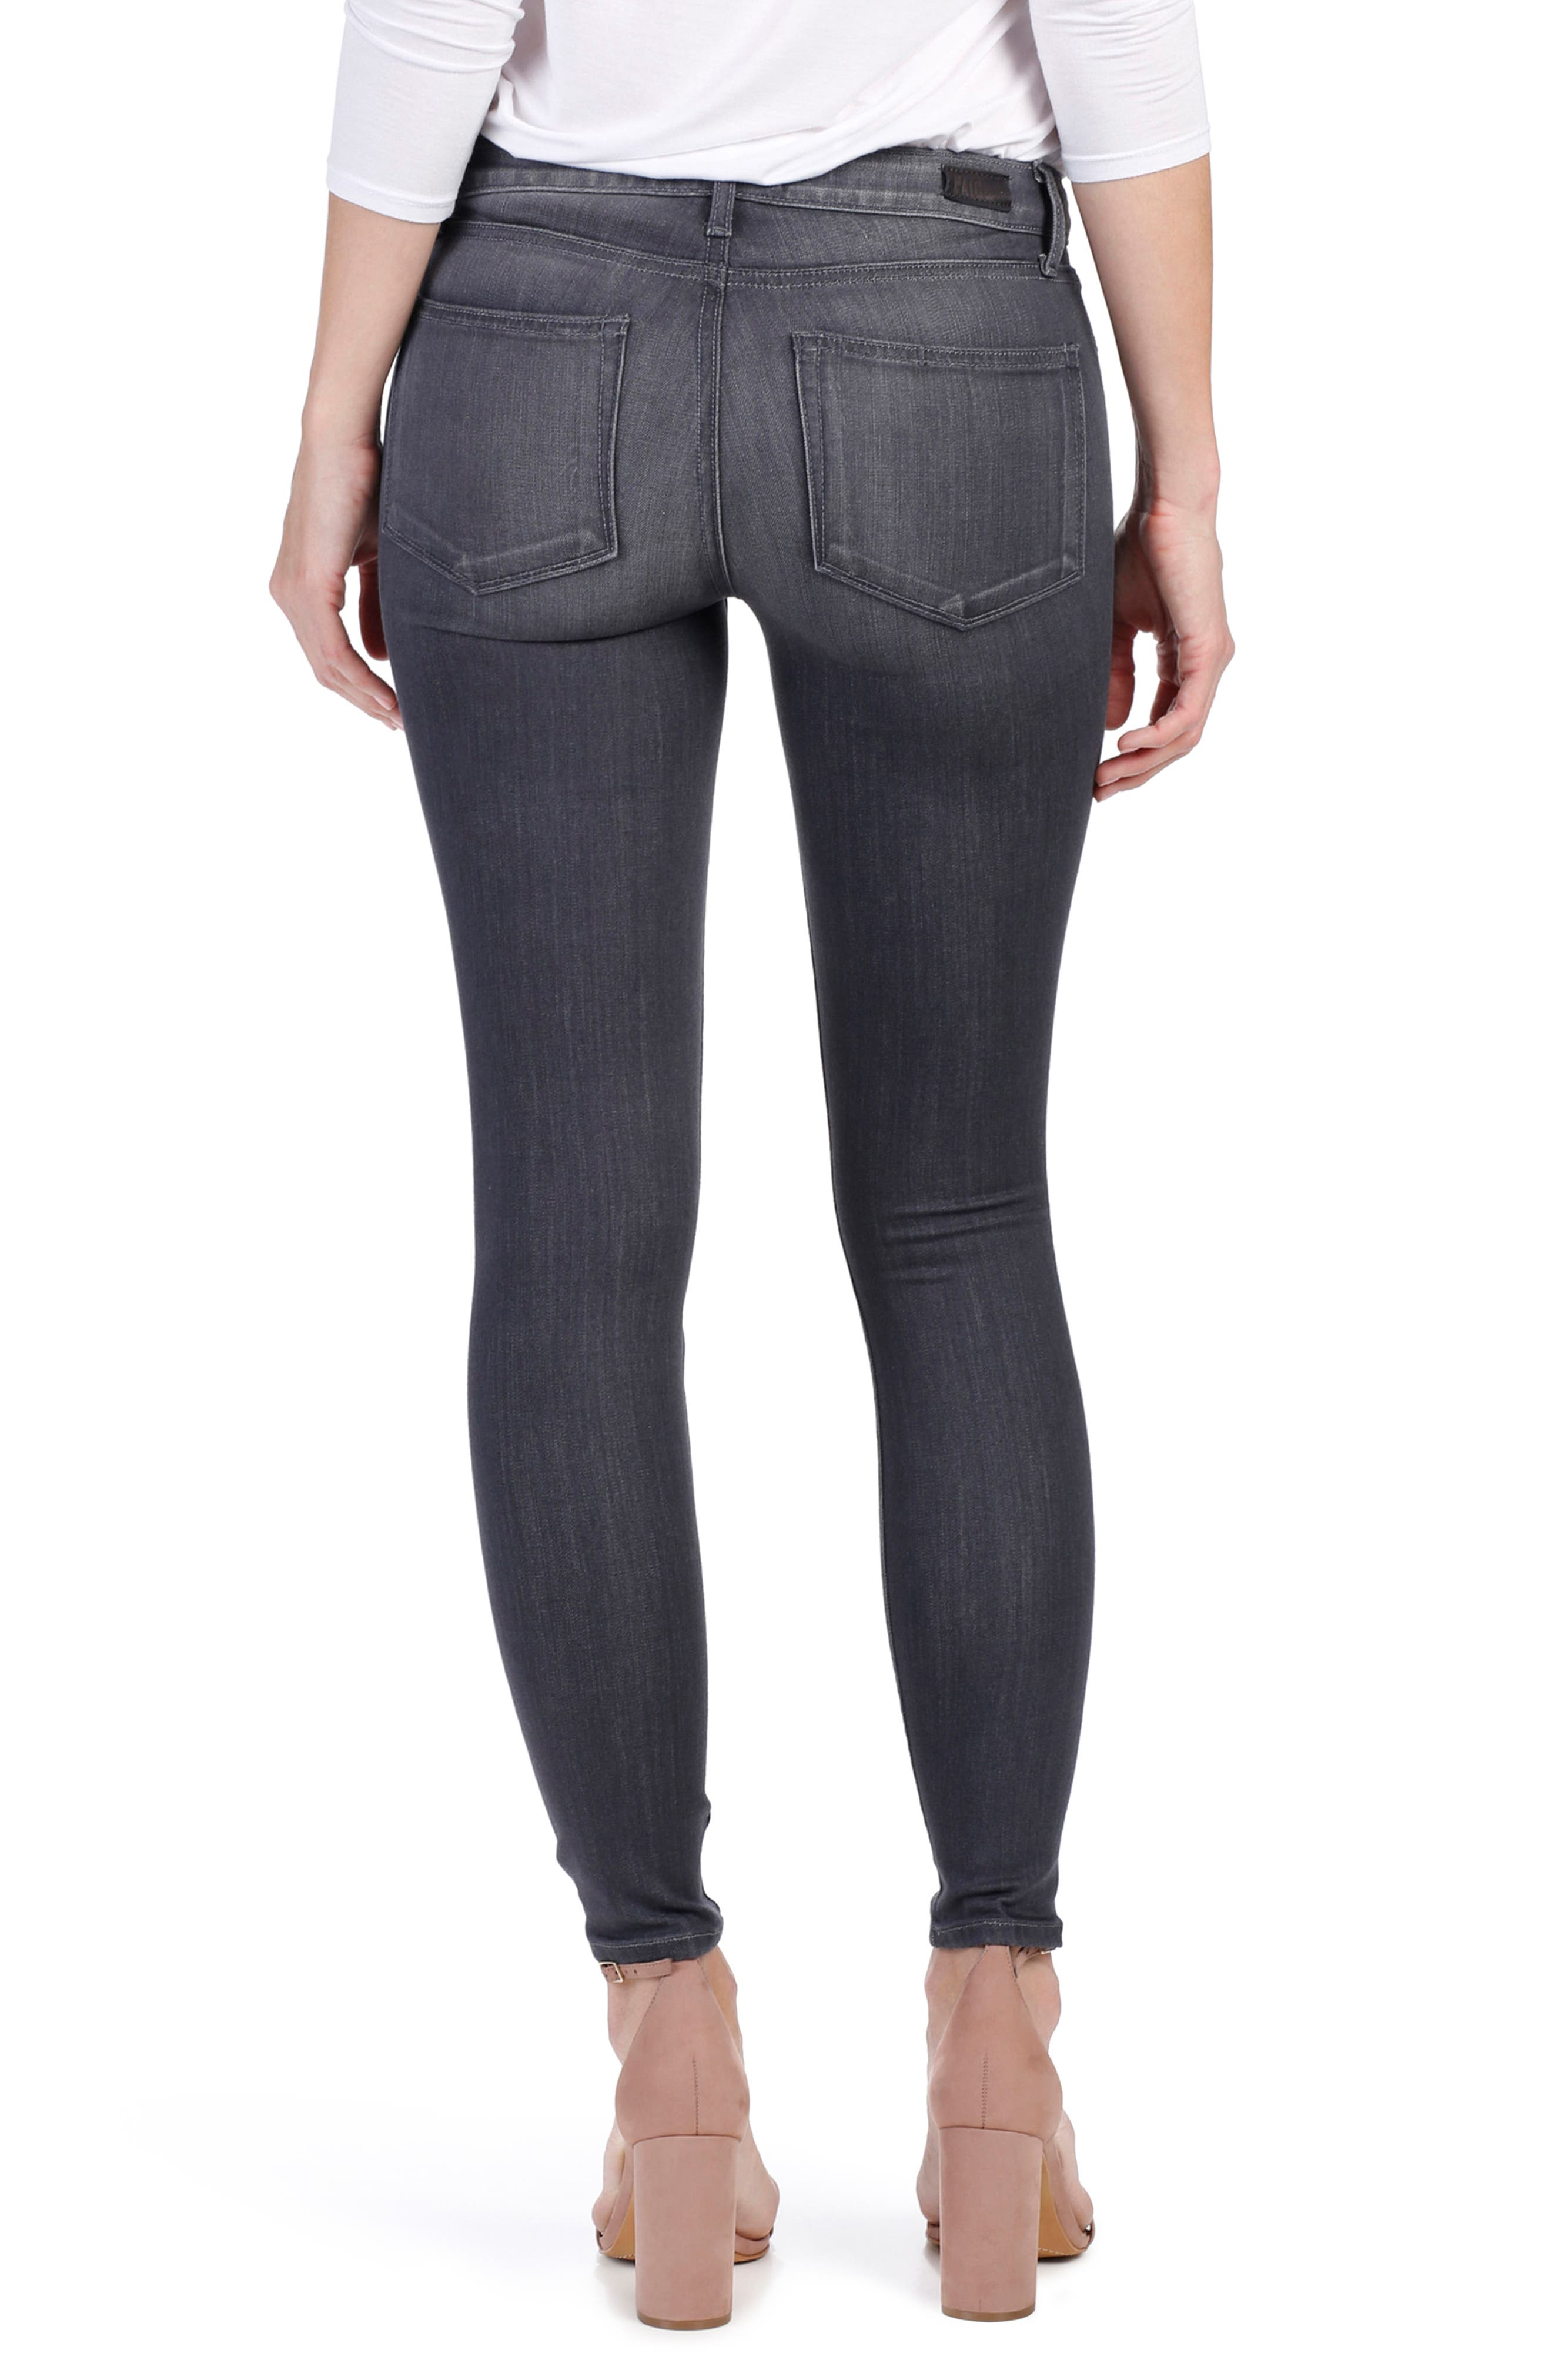 Alternate Image 3  - PAIGE Transcend - Verdugo Ankle Skinny Jeans (Summit Grey)